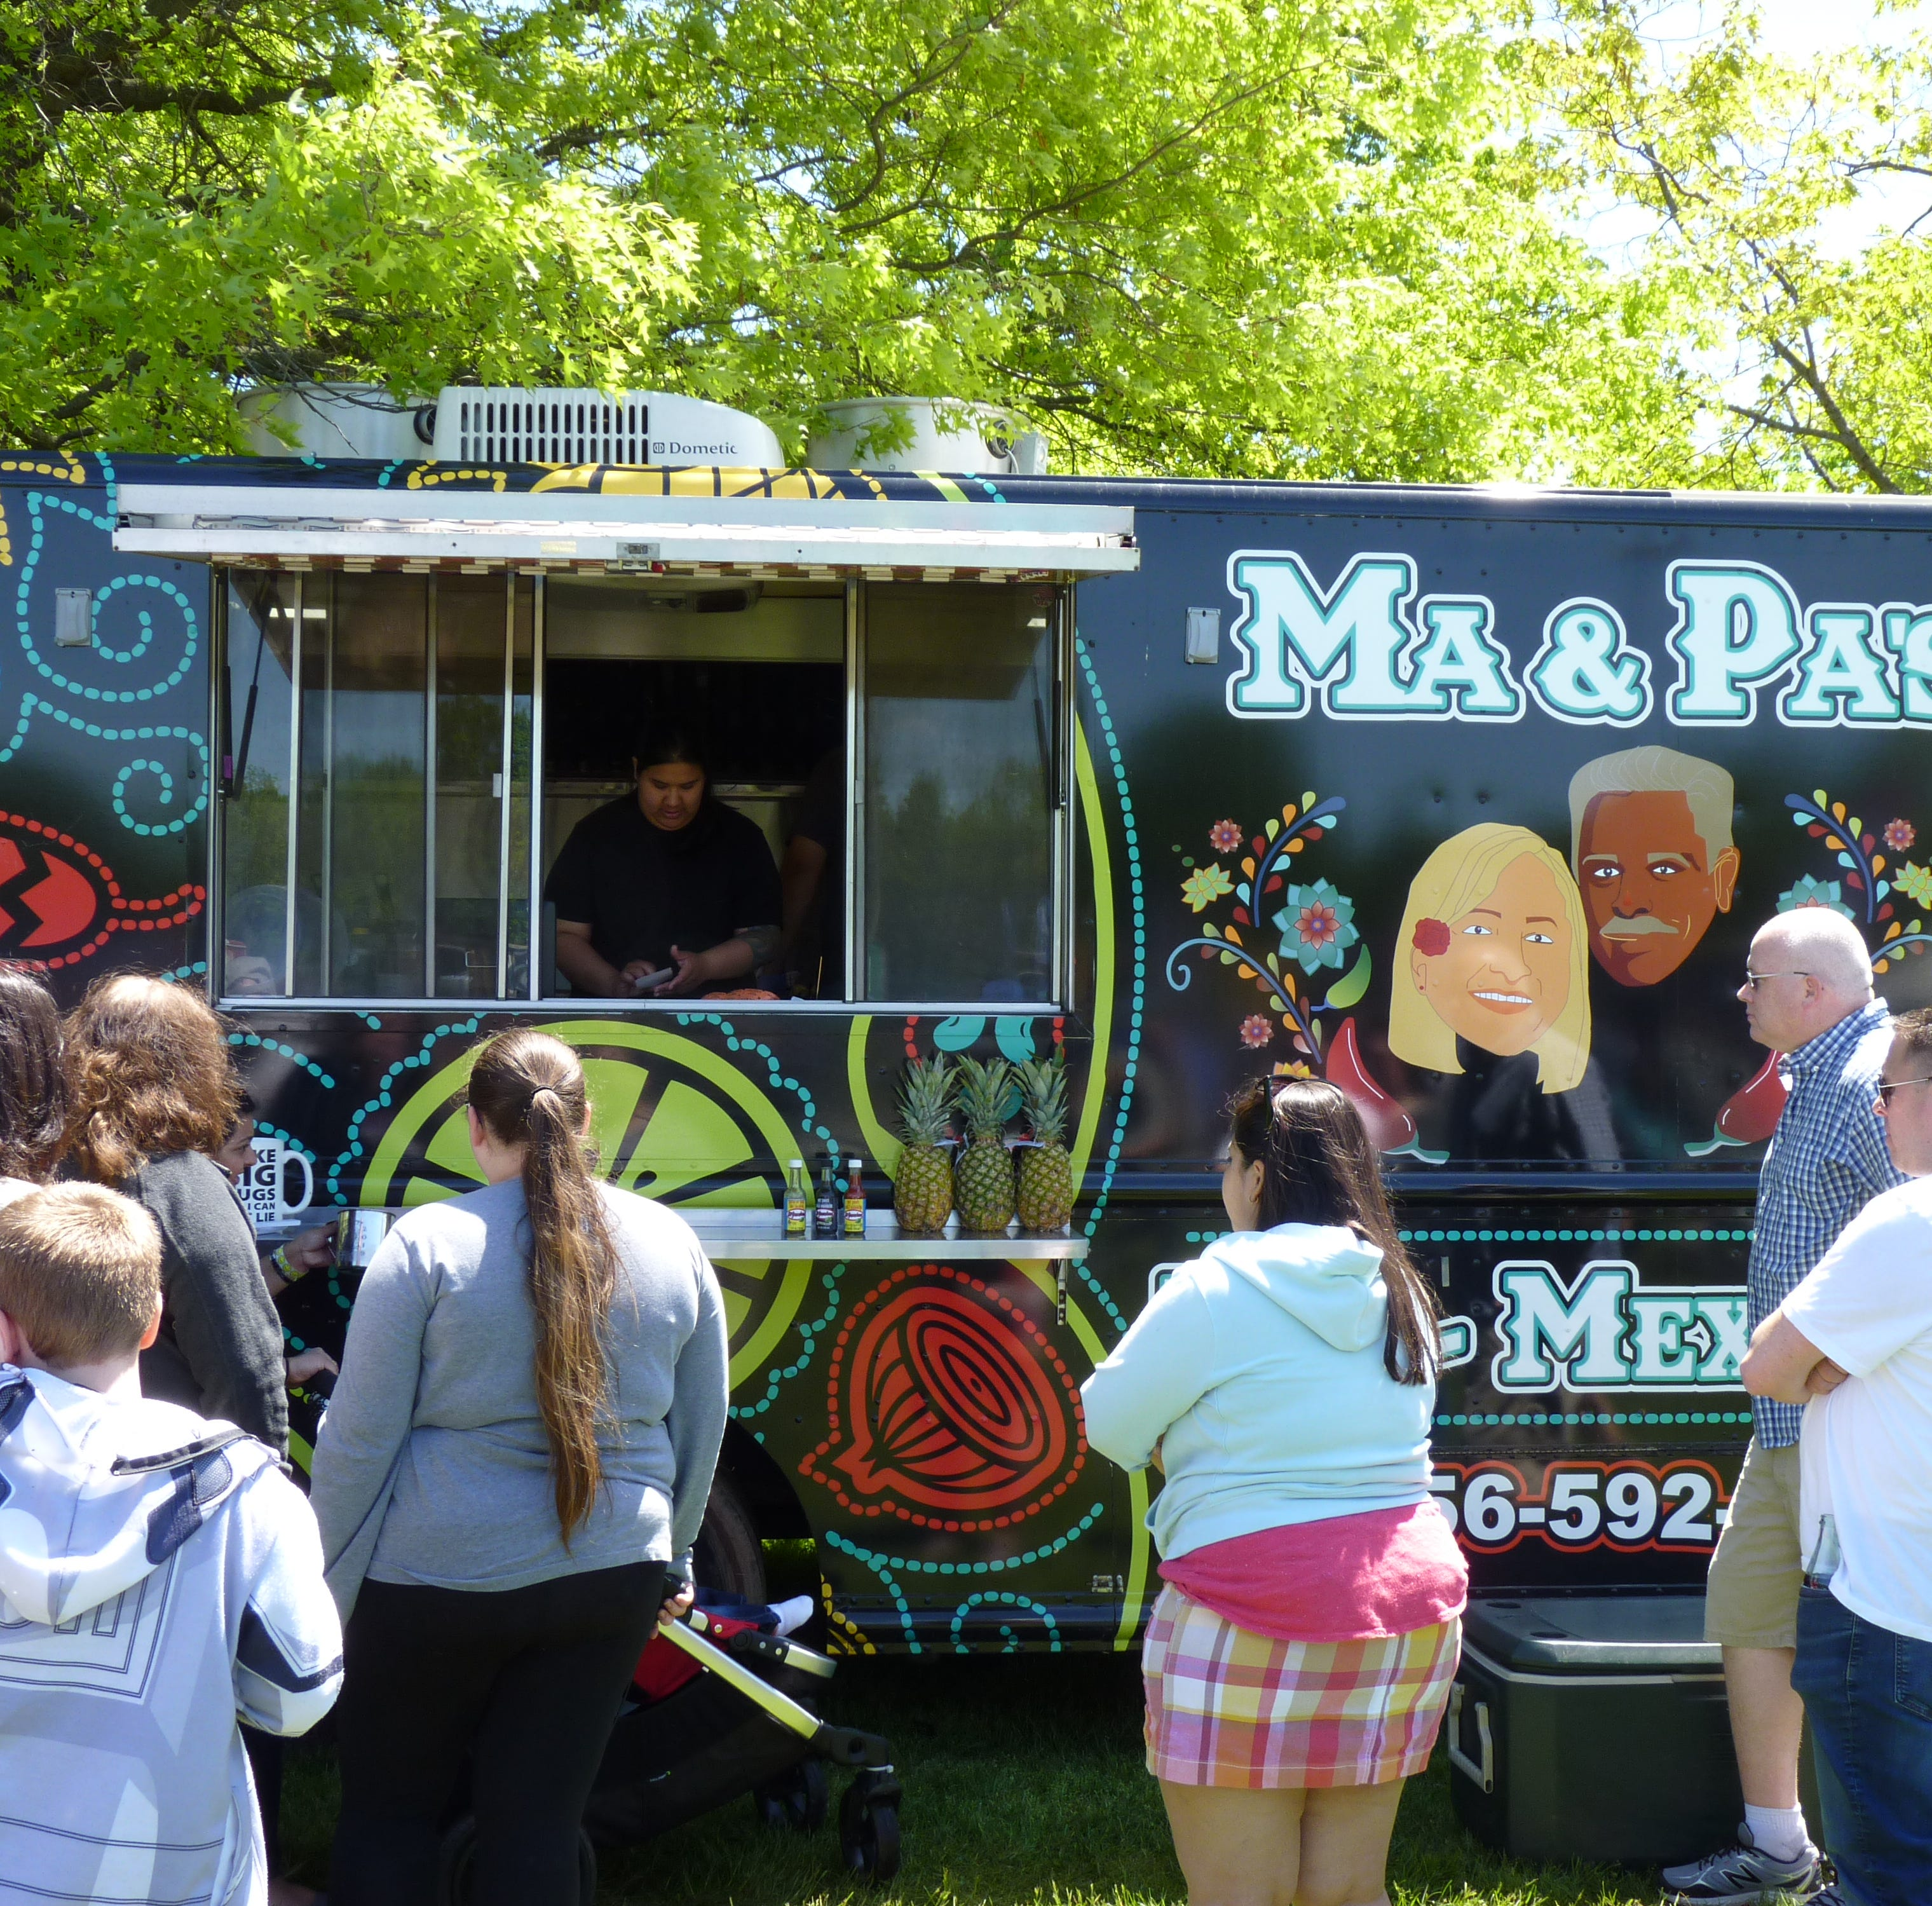 Branchburg Food Truck Festival draws thousands